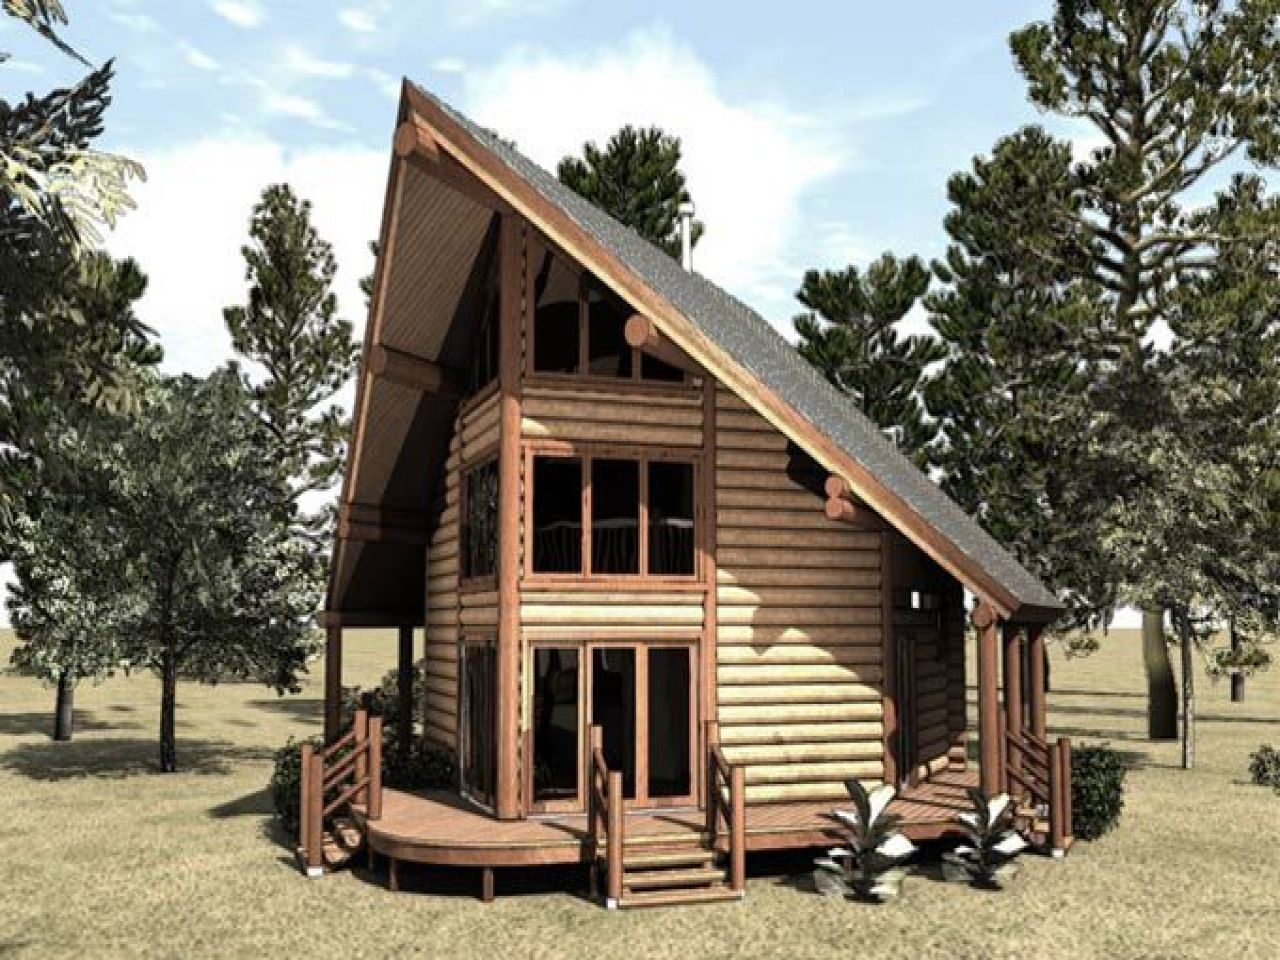 Frame Cabin Floor Plans With Loft Kits Lrg Small Timber Besides Calendar House Plans Cabin Floor Plans Loft Floor Plans